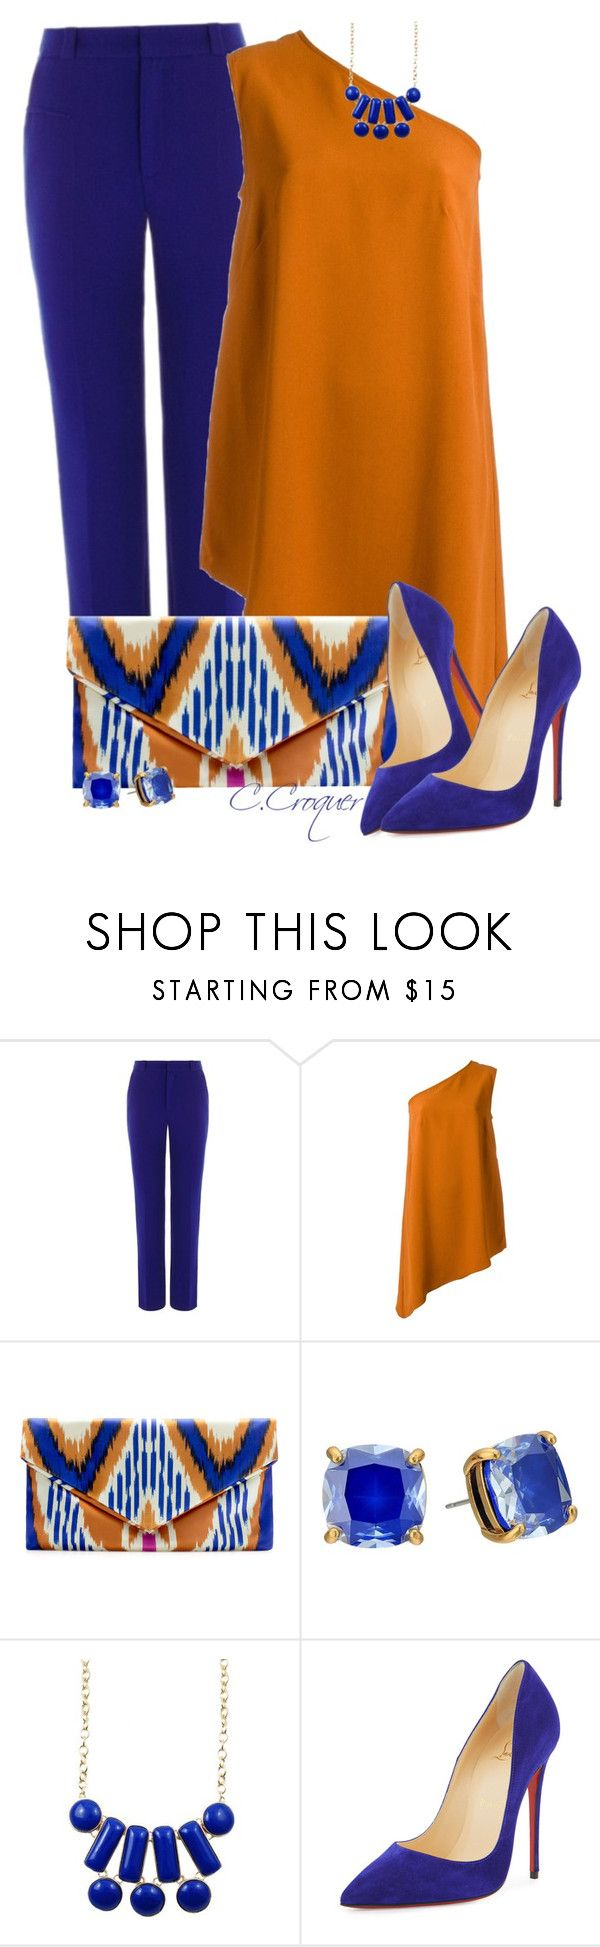 """Royal Blue For Spring"" by ccroquer ❤ liked on Polyvore featuring Roland Mouret, Andrea Marques, Zara, Kate Spade and Christian Louboutin"